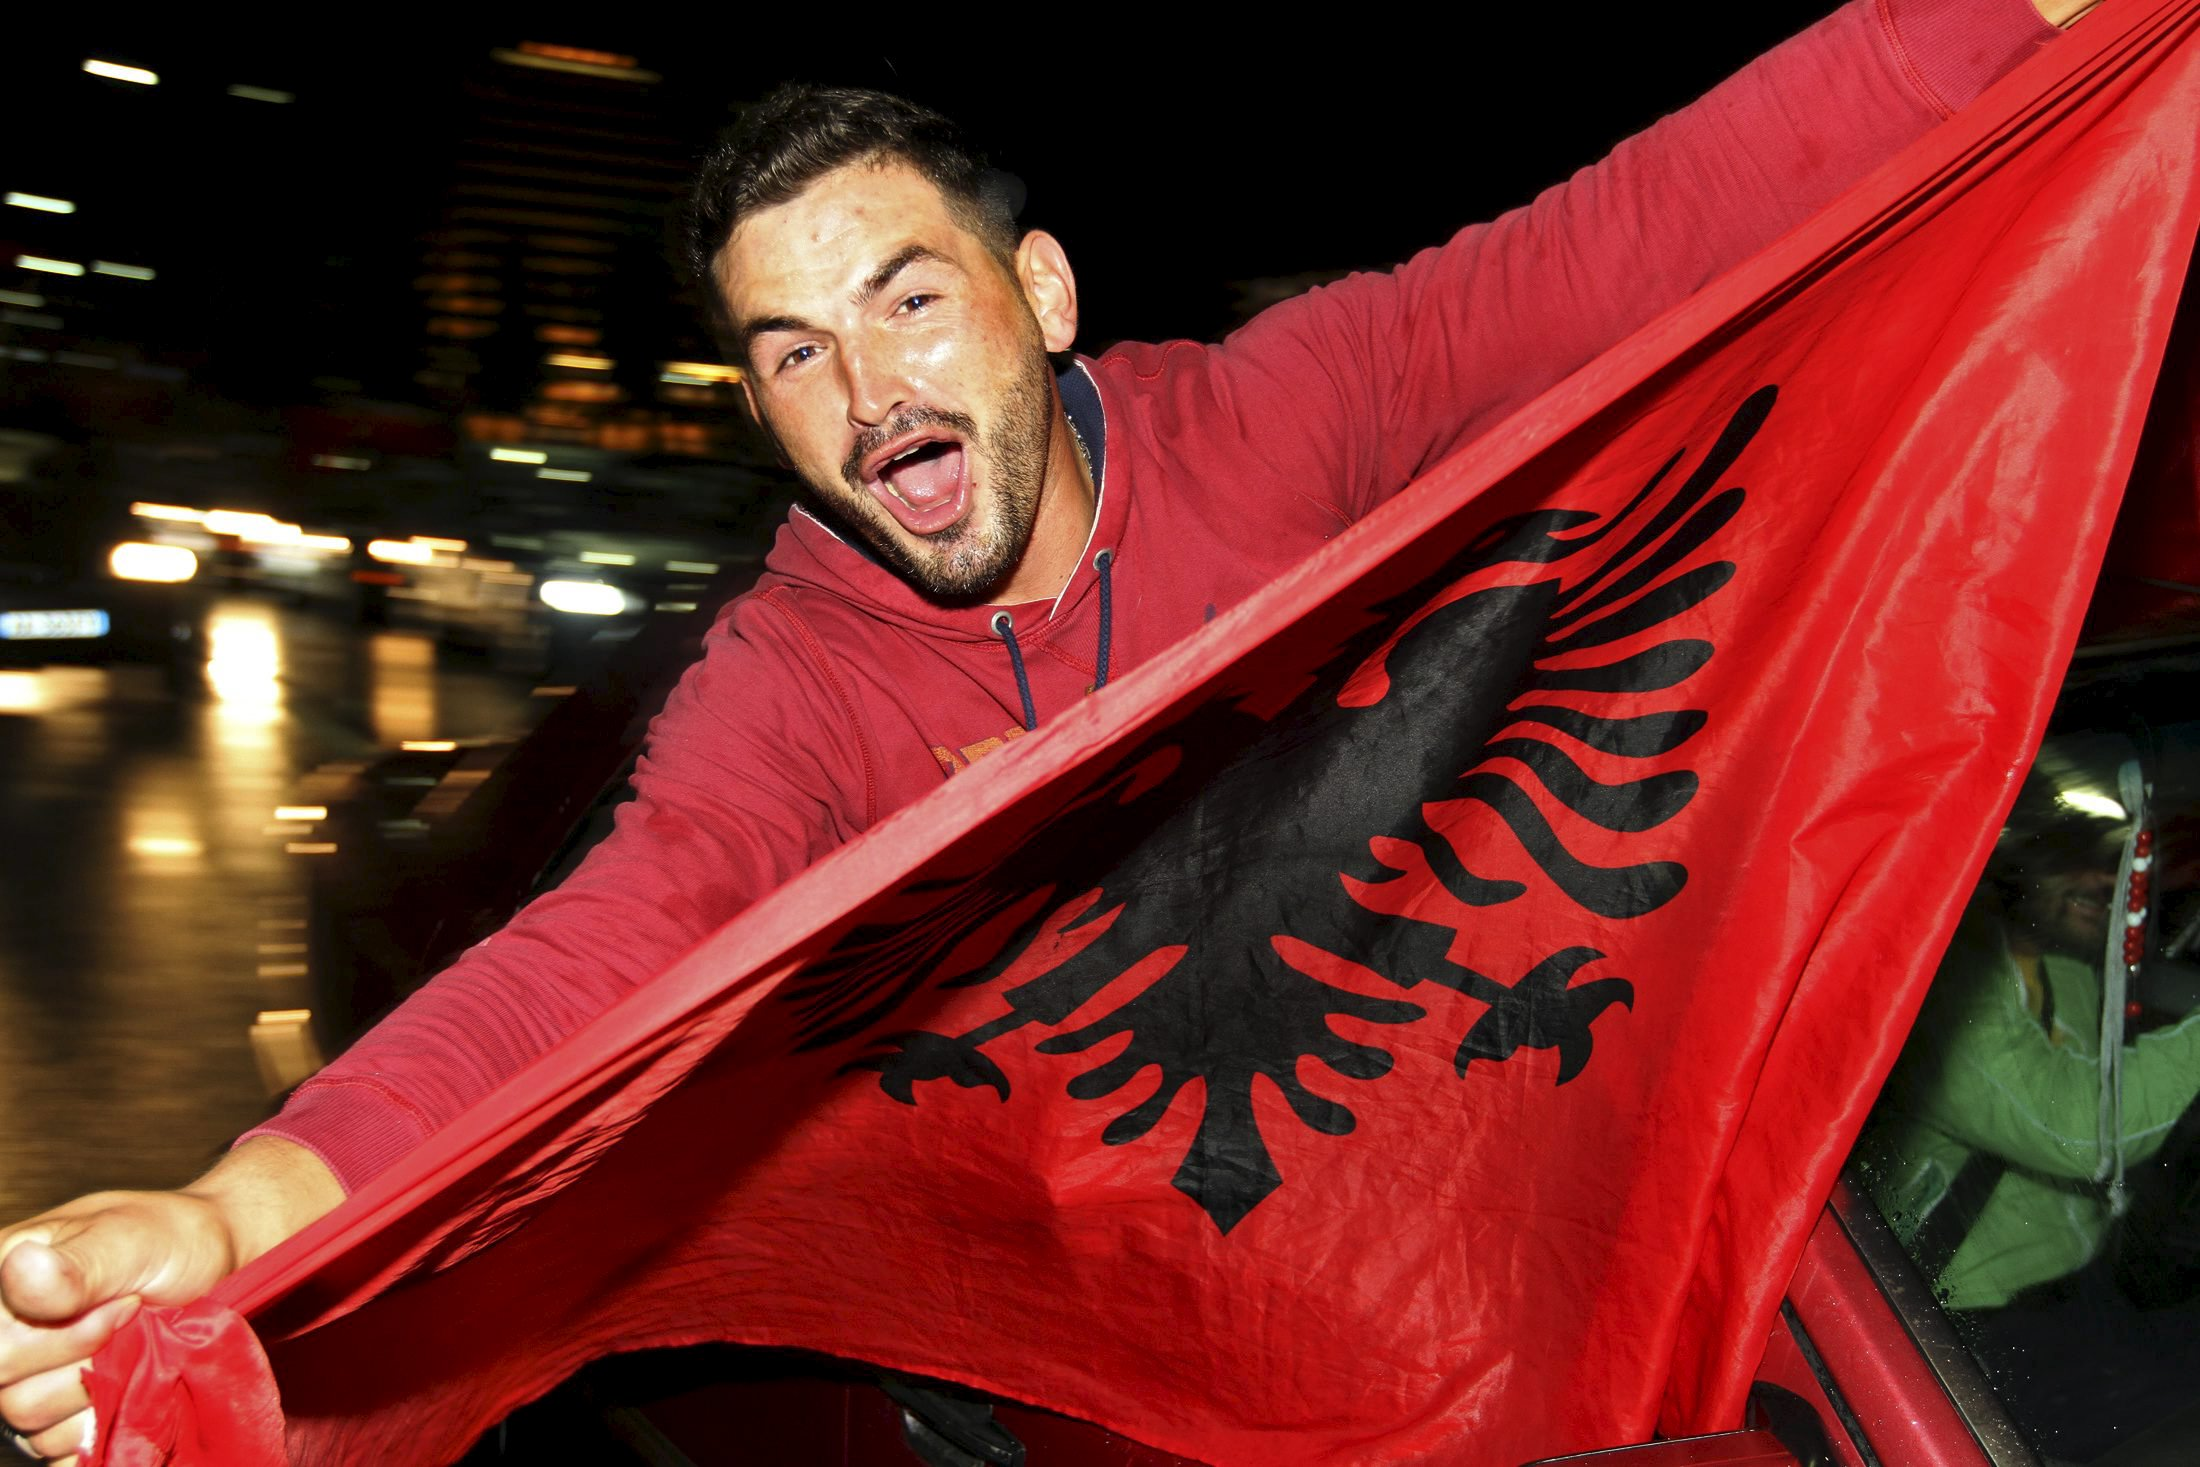 An Albanian soccer fan celebrates after Albania beat Armenia in their Euro 2016 Group I qualifying soccer match, in Tirana, Albania October 11, 2015. Albania qualified for Euro 2016, their first ever major tournament, when a 3-0 away win over Armenia clinched second place in Group I above Denmark on Sunday sparking wild celebrations across the country. REUTERS/Arben Celi